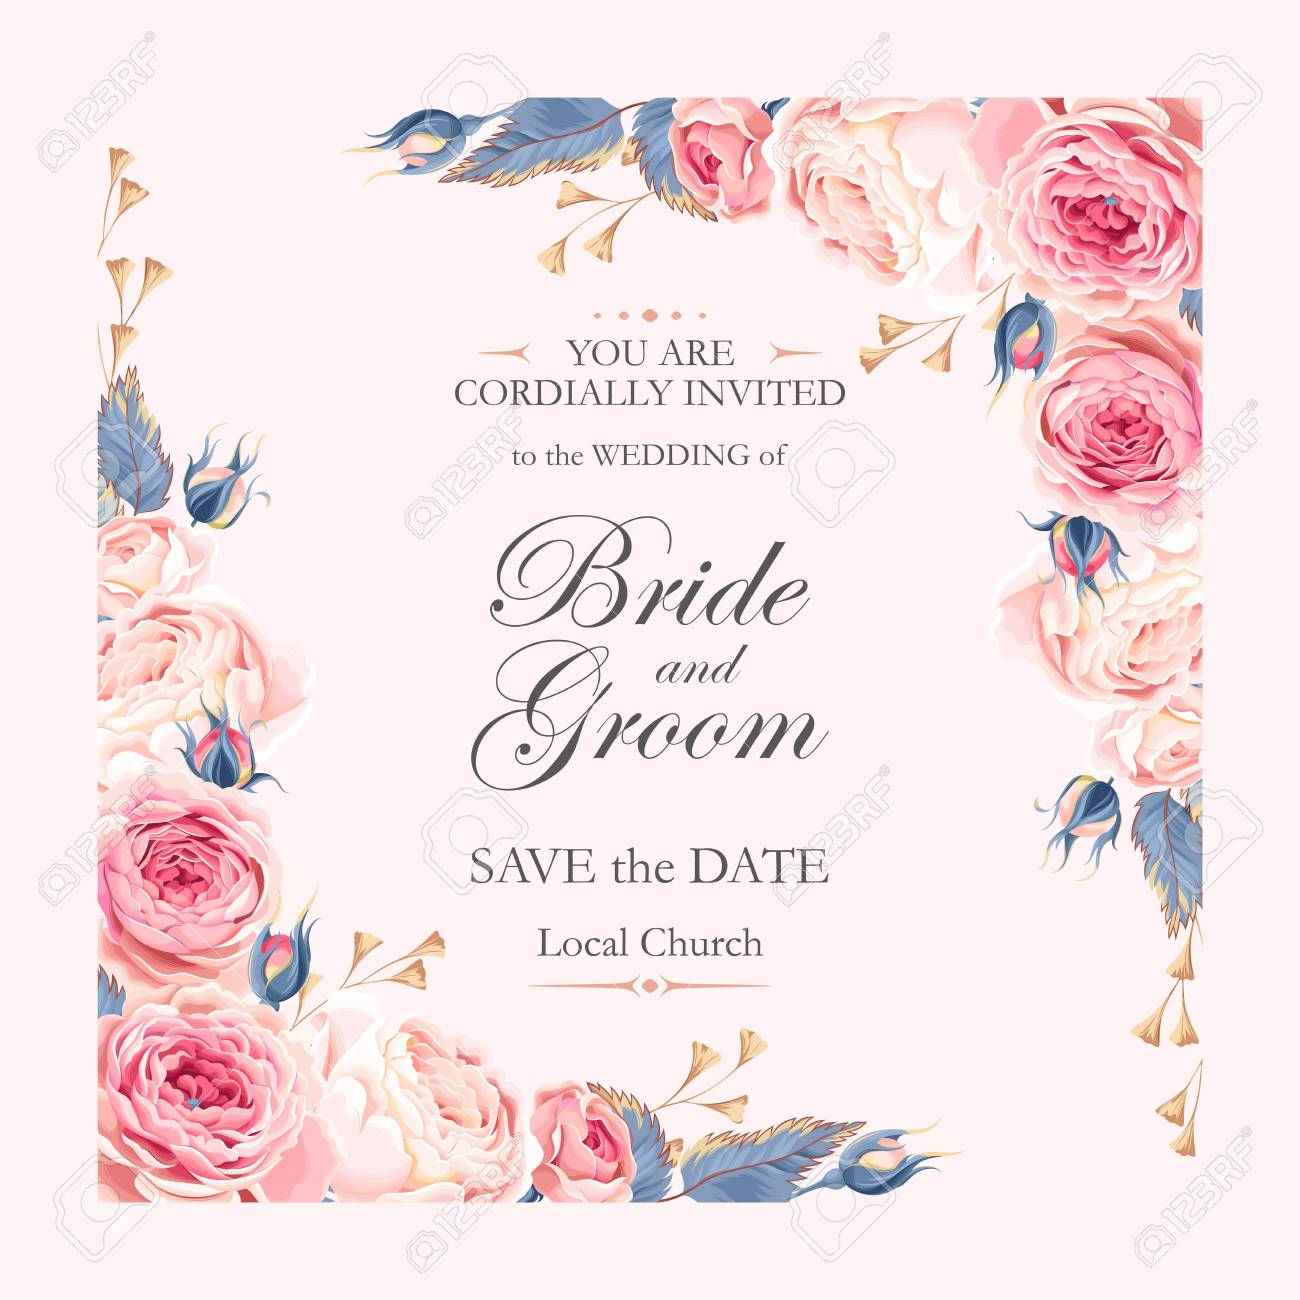 Vector vintage wedding invitation with beautiful english roses